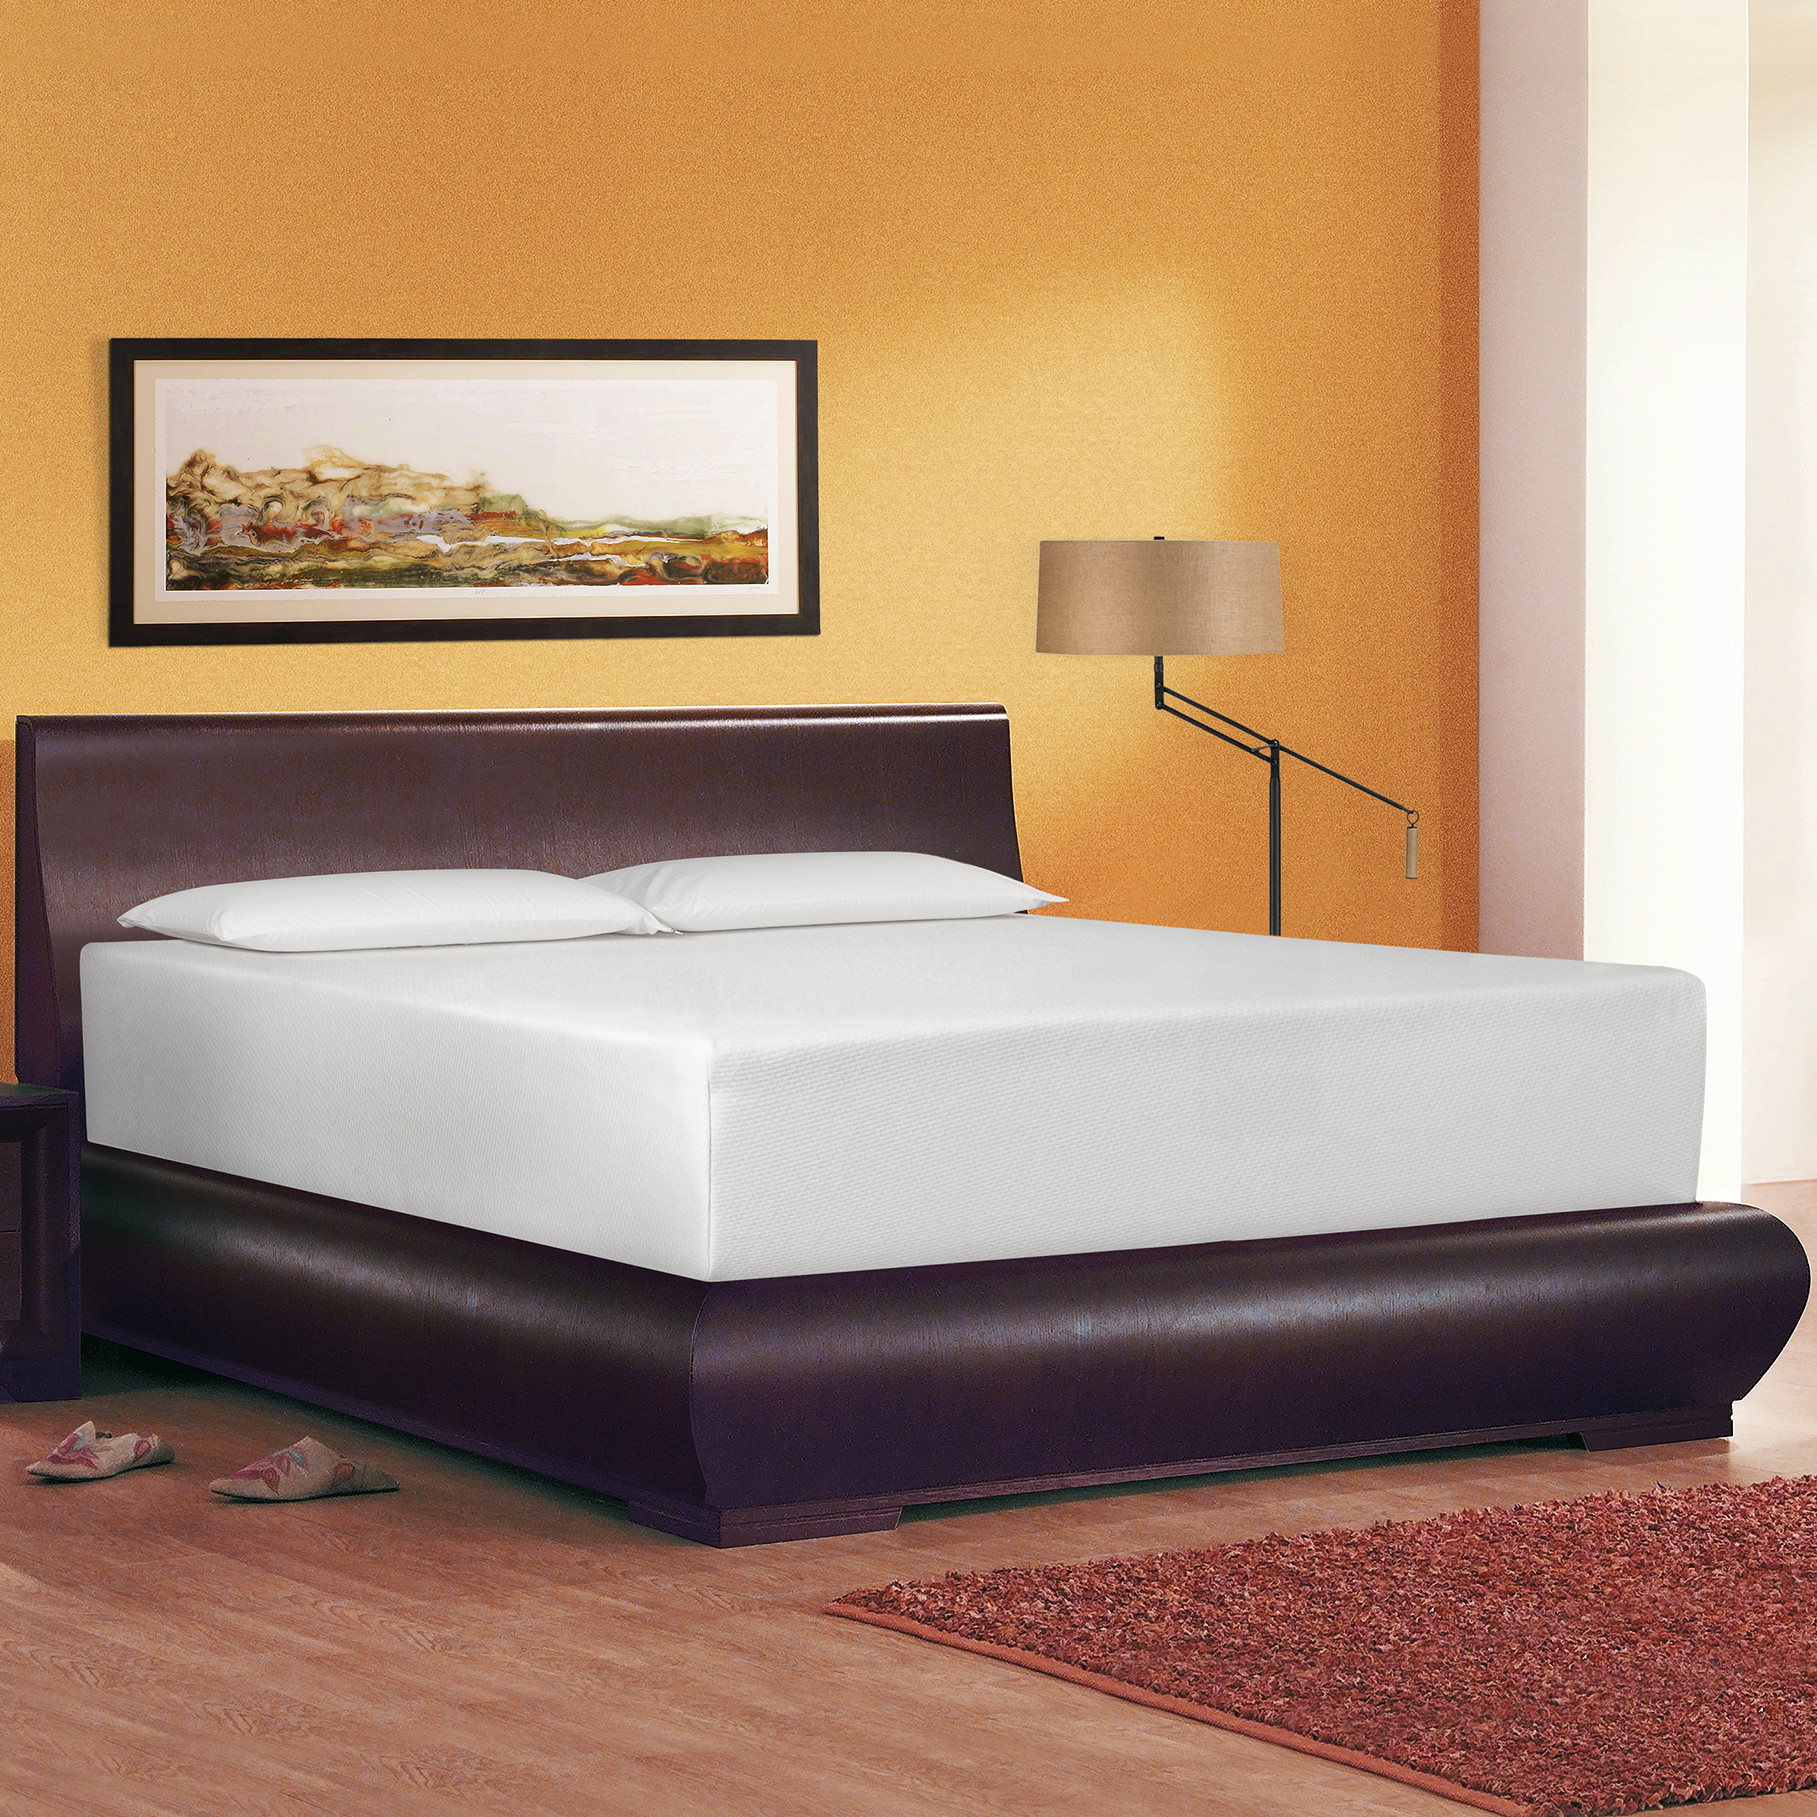 Image of: Memory Foam Futon Mattress Ideas